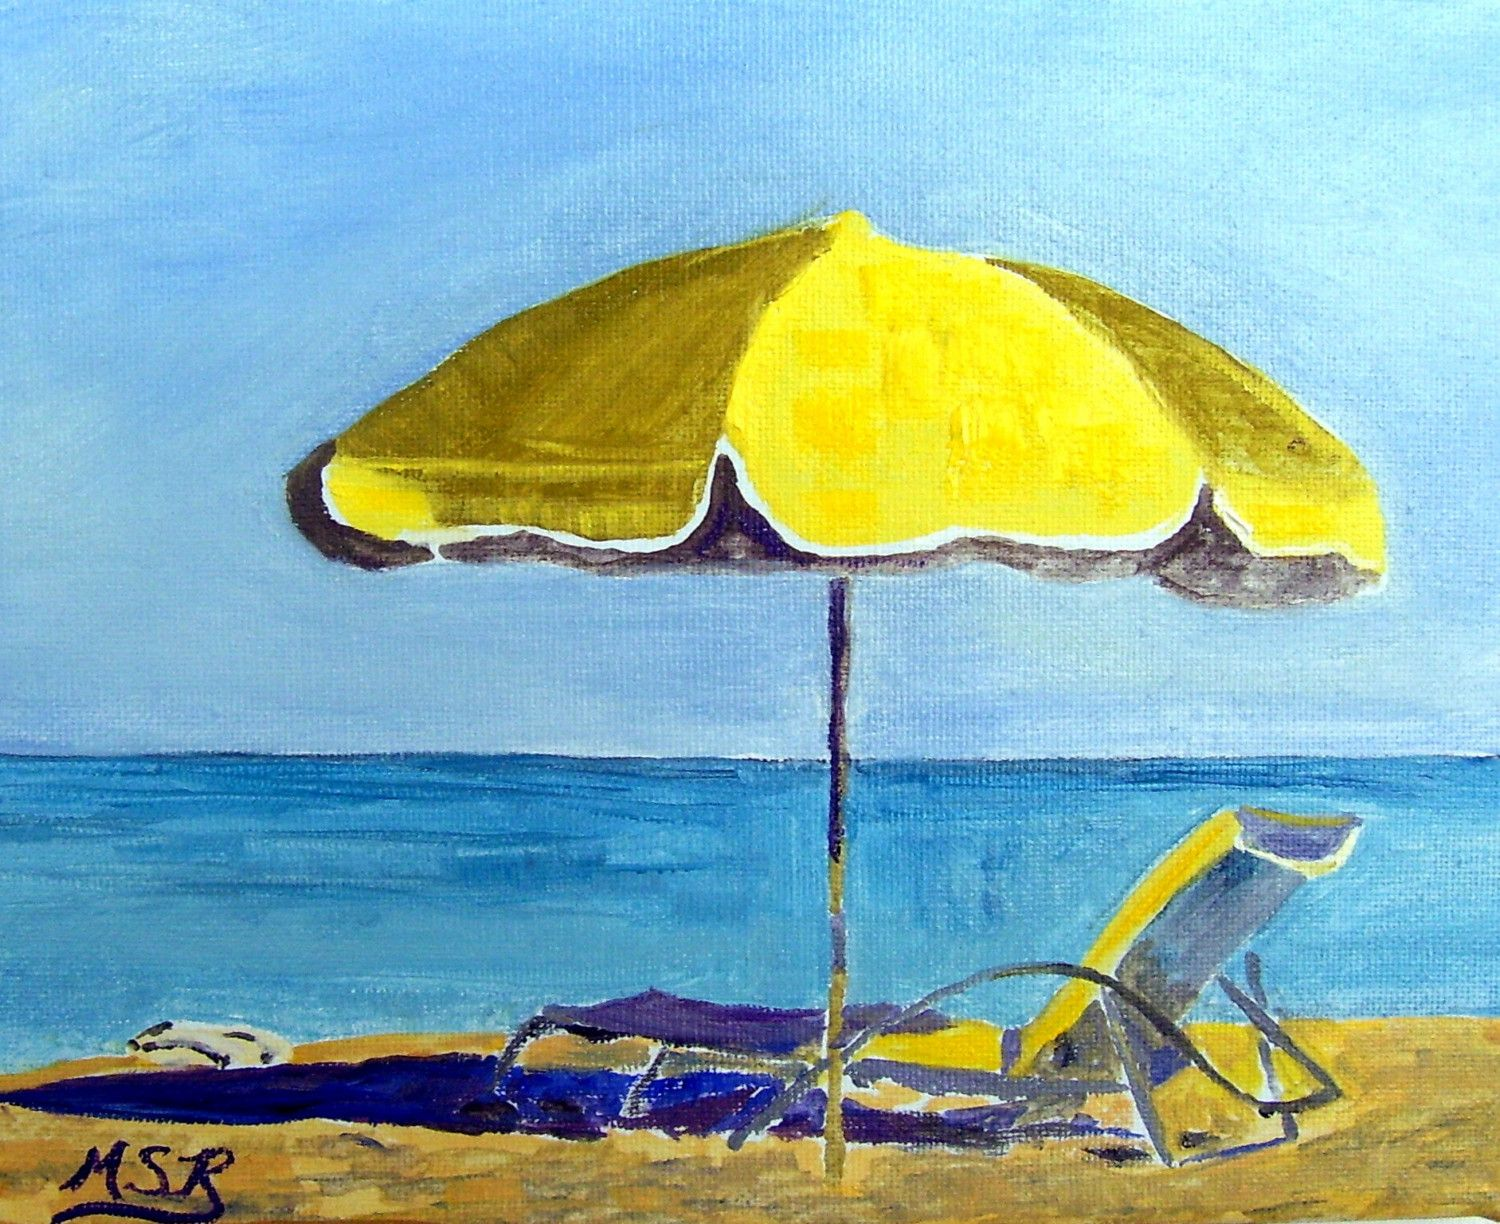 Miami Beach Yellow Umbrella and Lounge Chair Seascape Oil Painting – Lounge Chair Umbrella